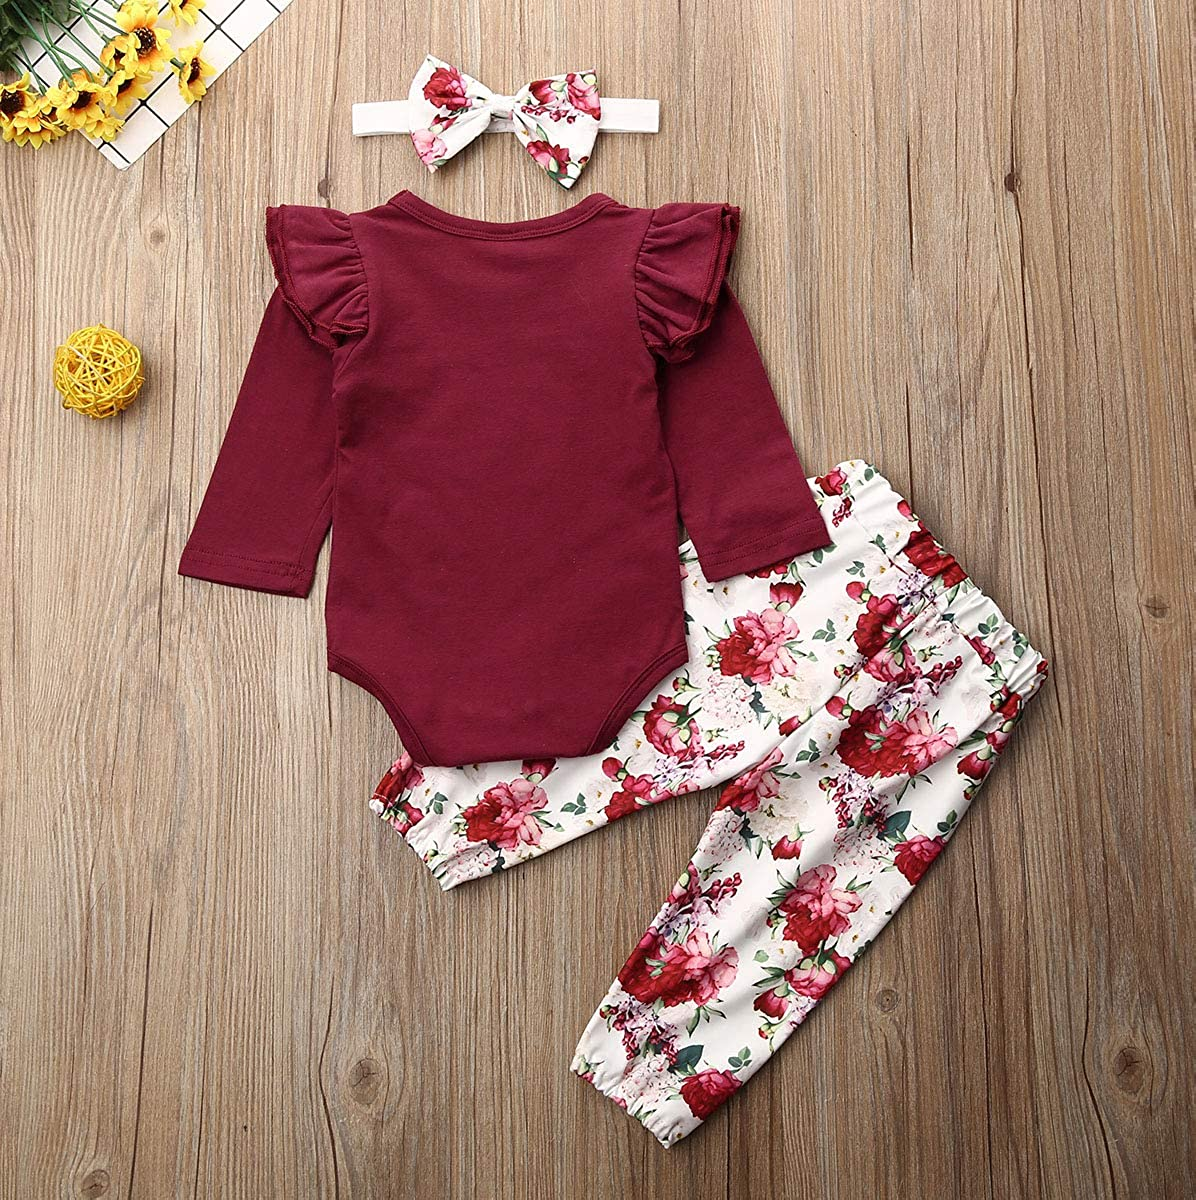 Emmababy Newborn Girls Clothes Baby Romper Outfit Pants Set Long Sleeve Toddler Infant Winter Clothing